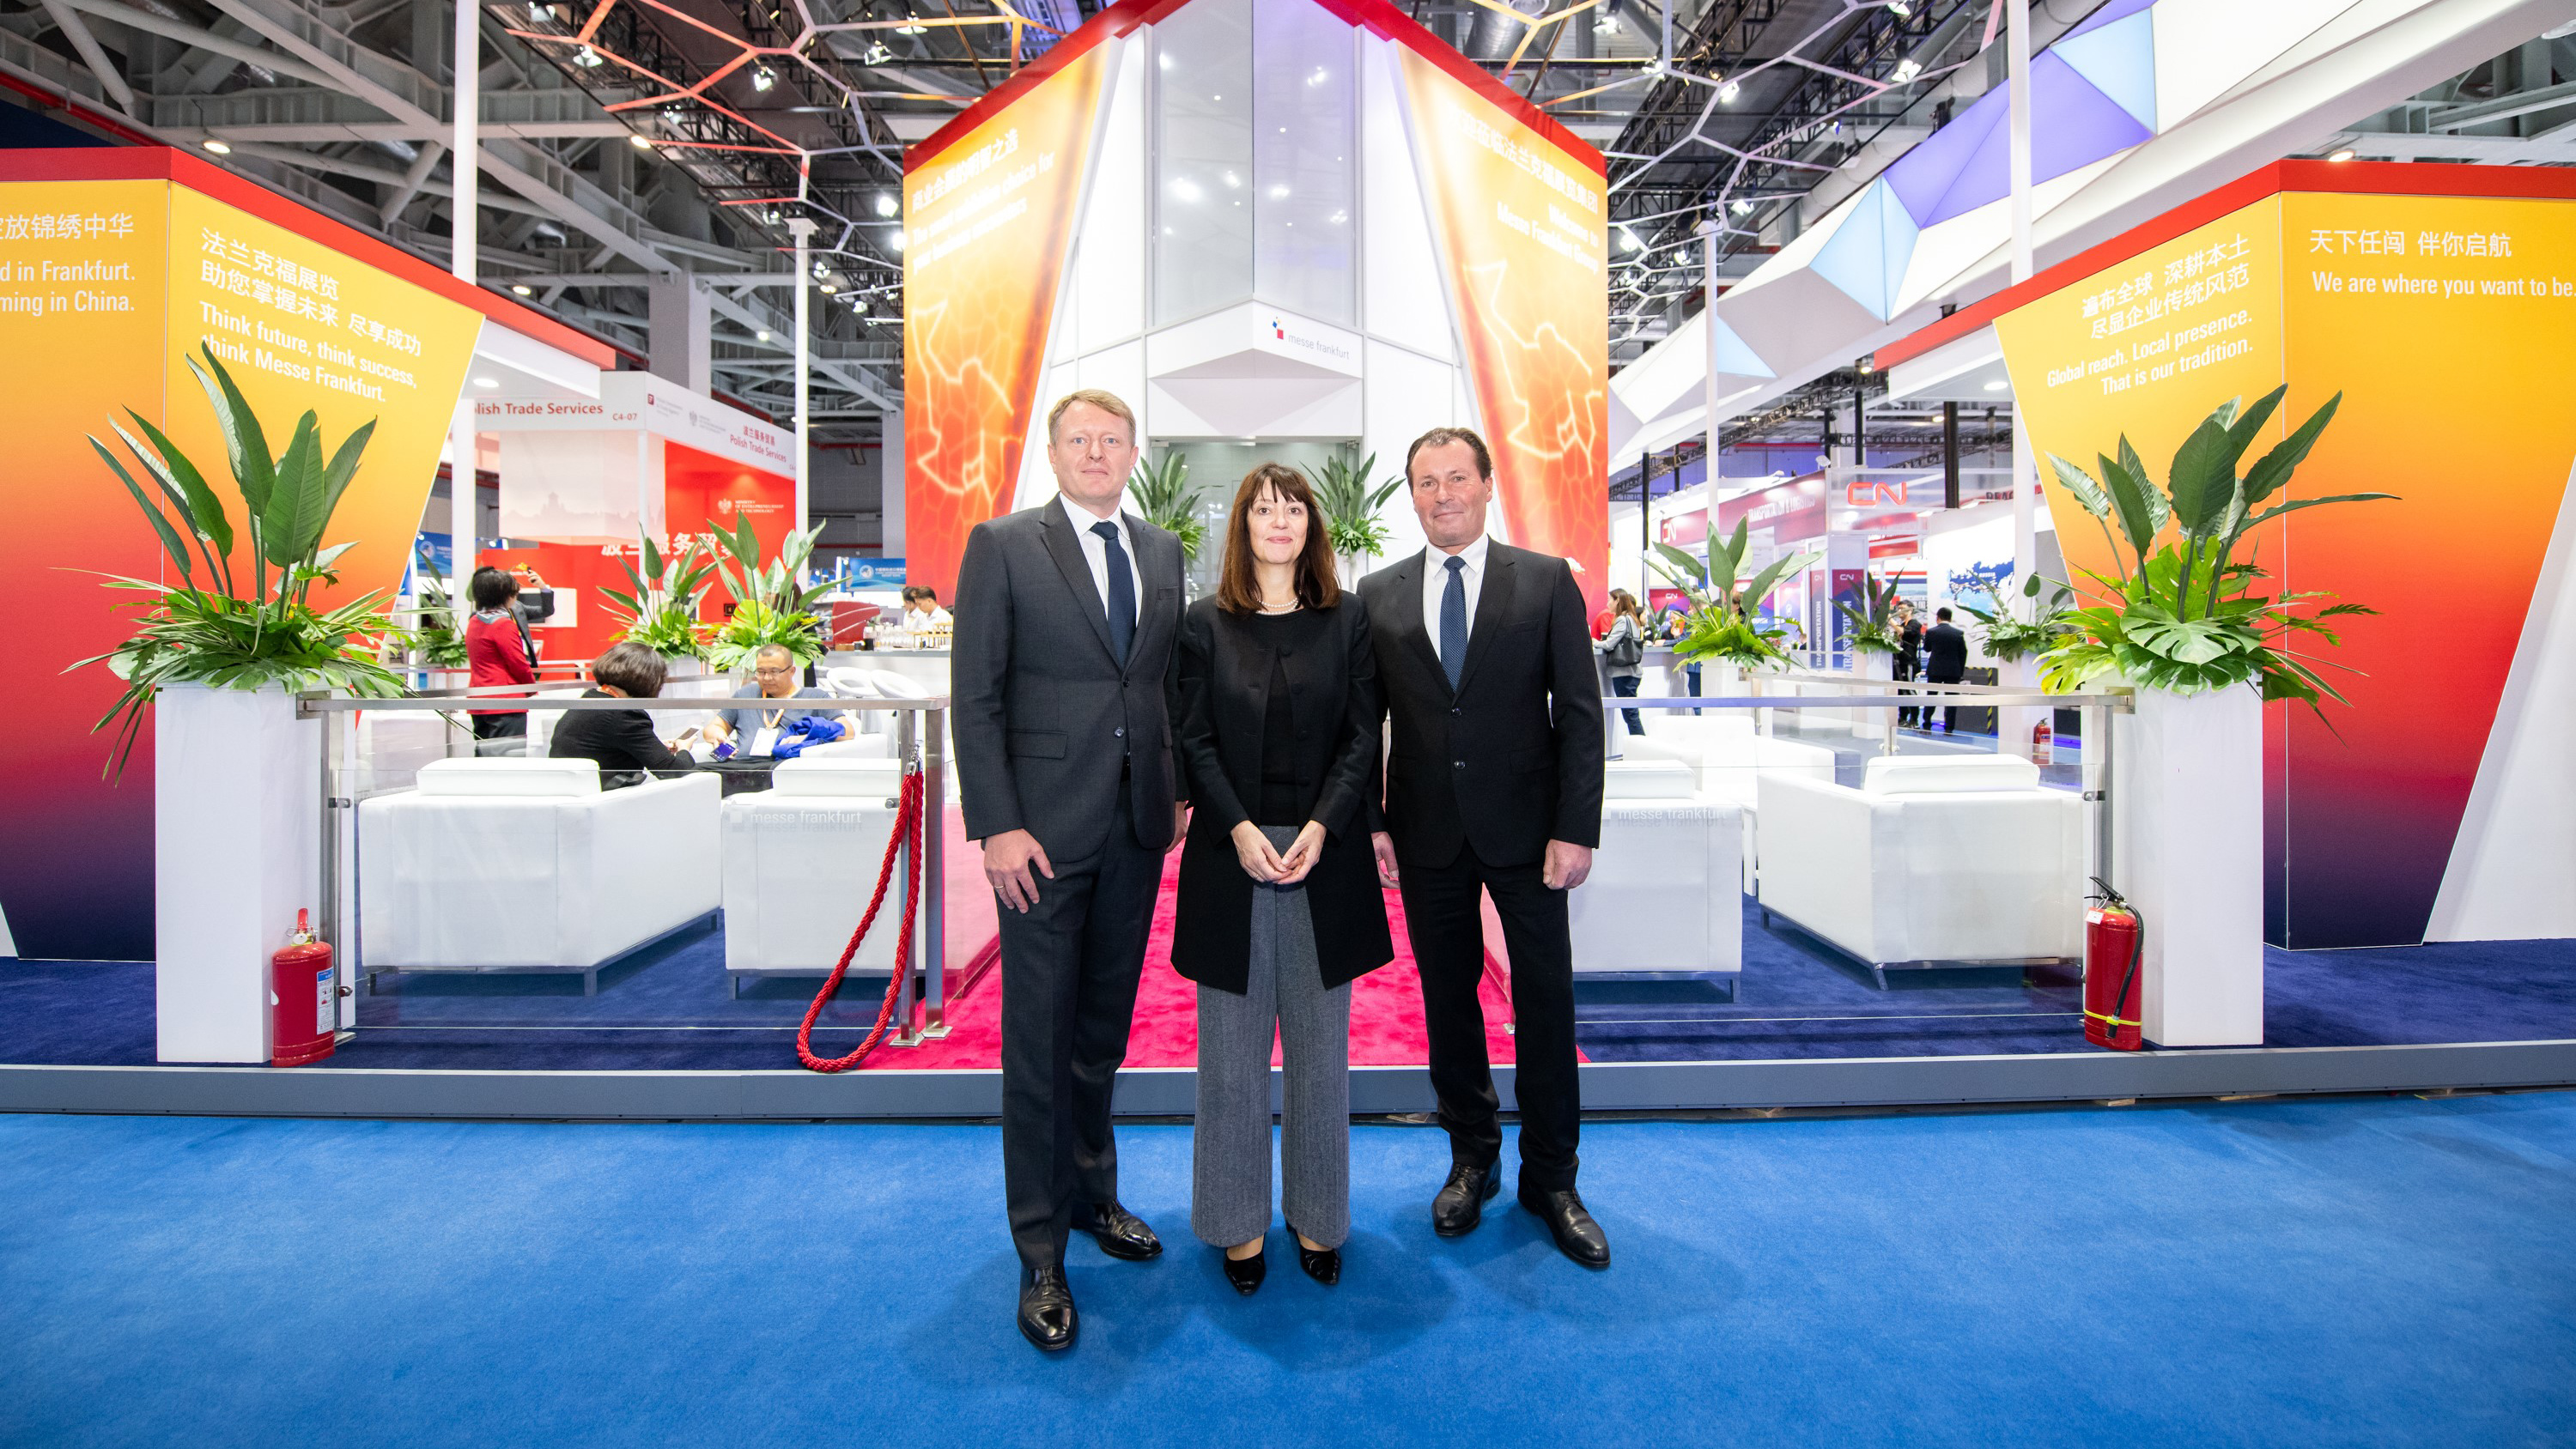 Top Messe Frankfurt Group management at CIIE on the opening morning of the fair. From the left: Mr Stephan Buurma, Board of Management; Ms Iris Jeglitza-Moshage, Board of Management; Mr Wolfgang Marzin, President & Chief Executive Officer